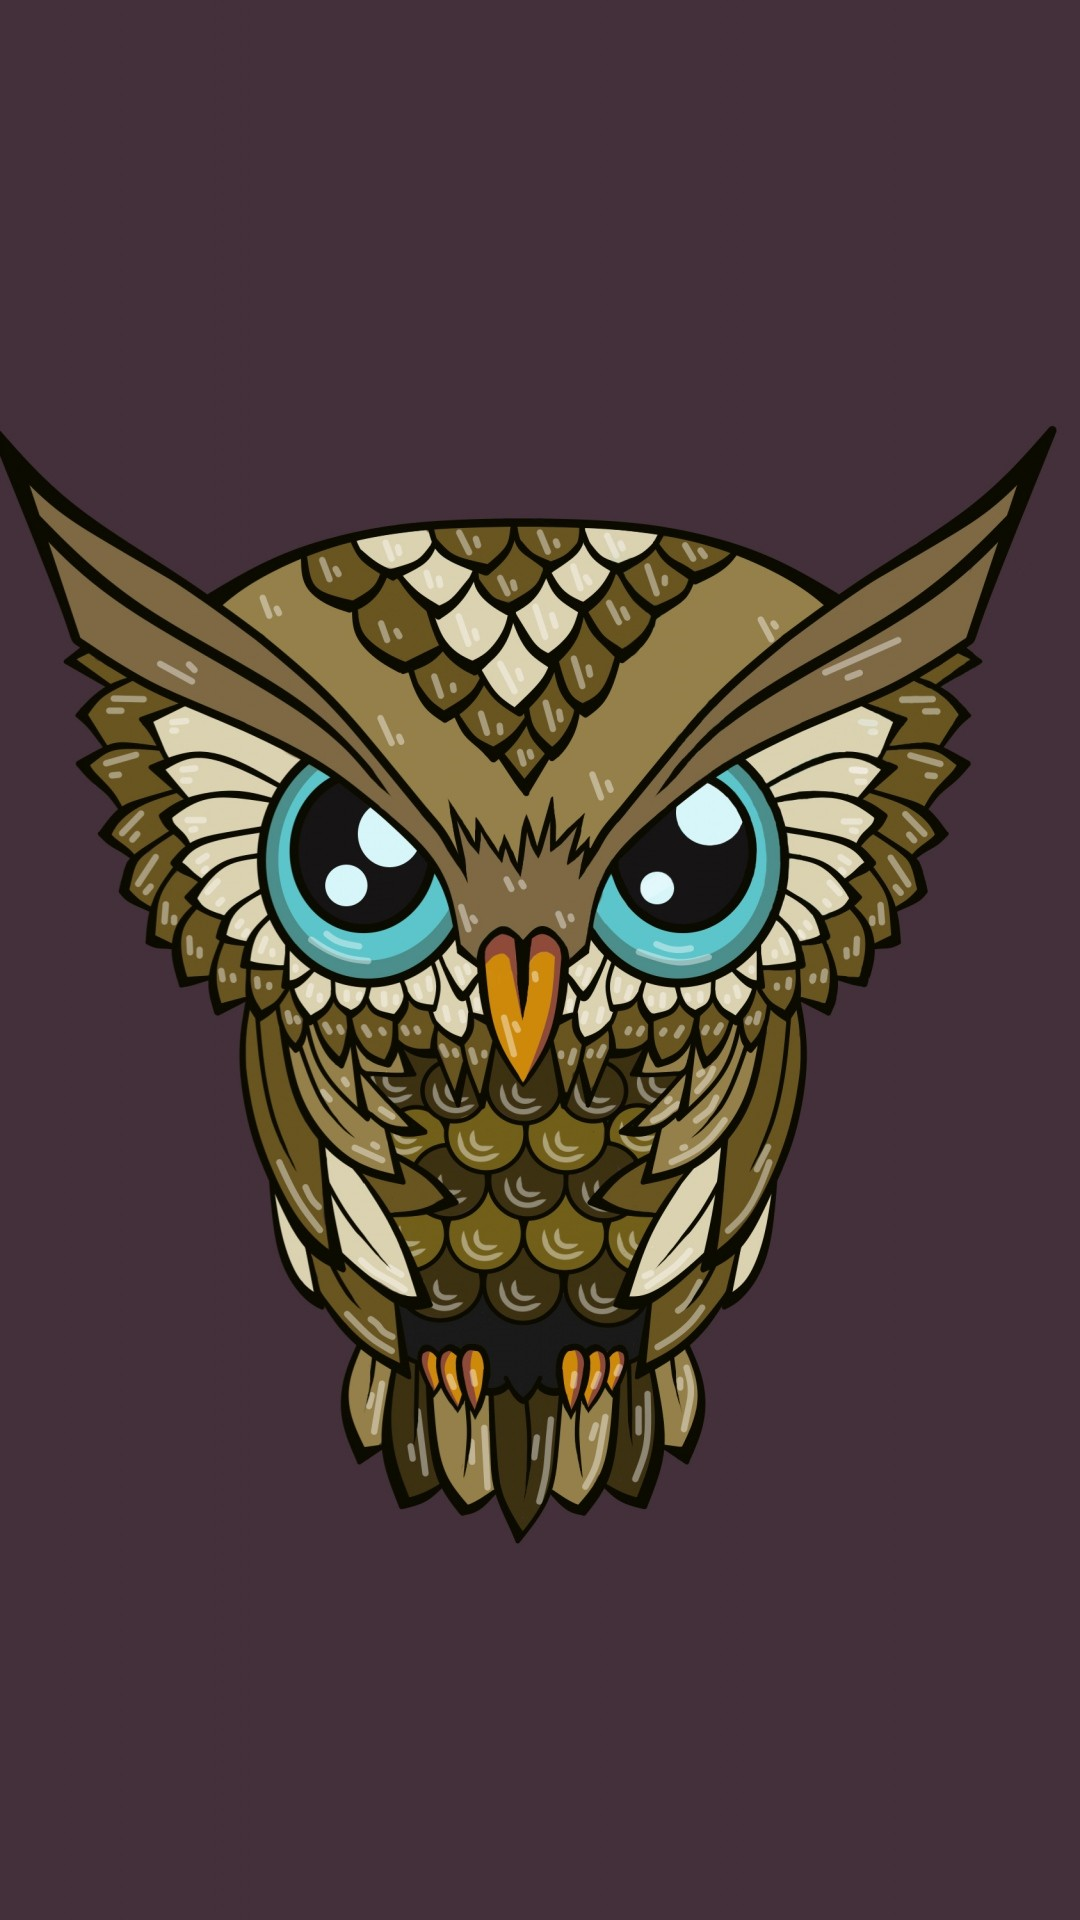 Res: 1080x1920, Cute Owl Wallpaper HD for Android.